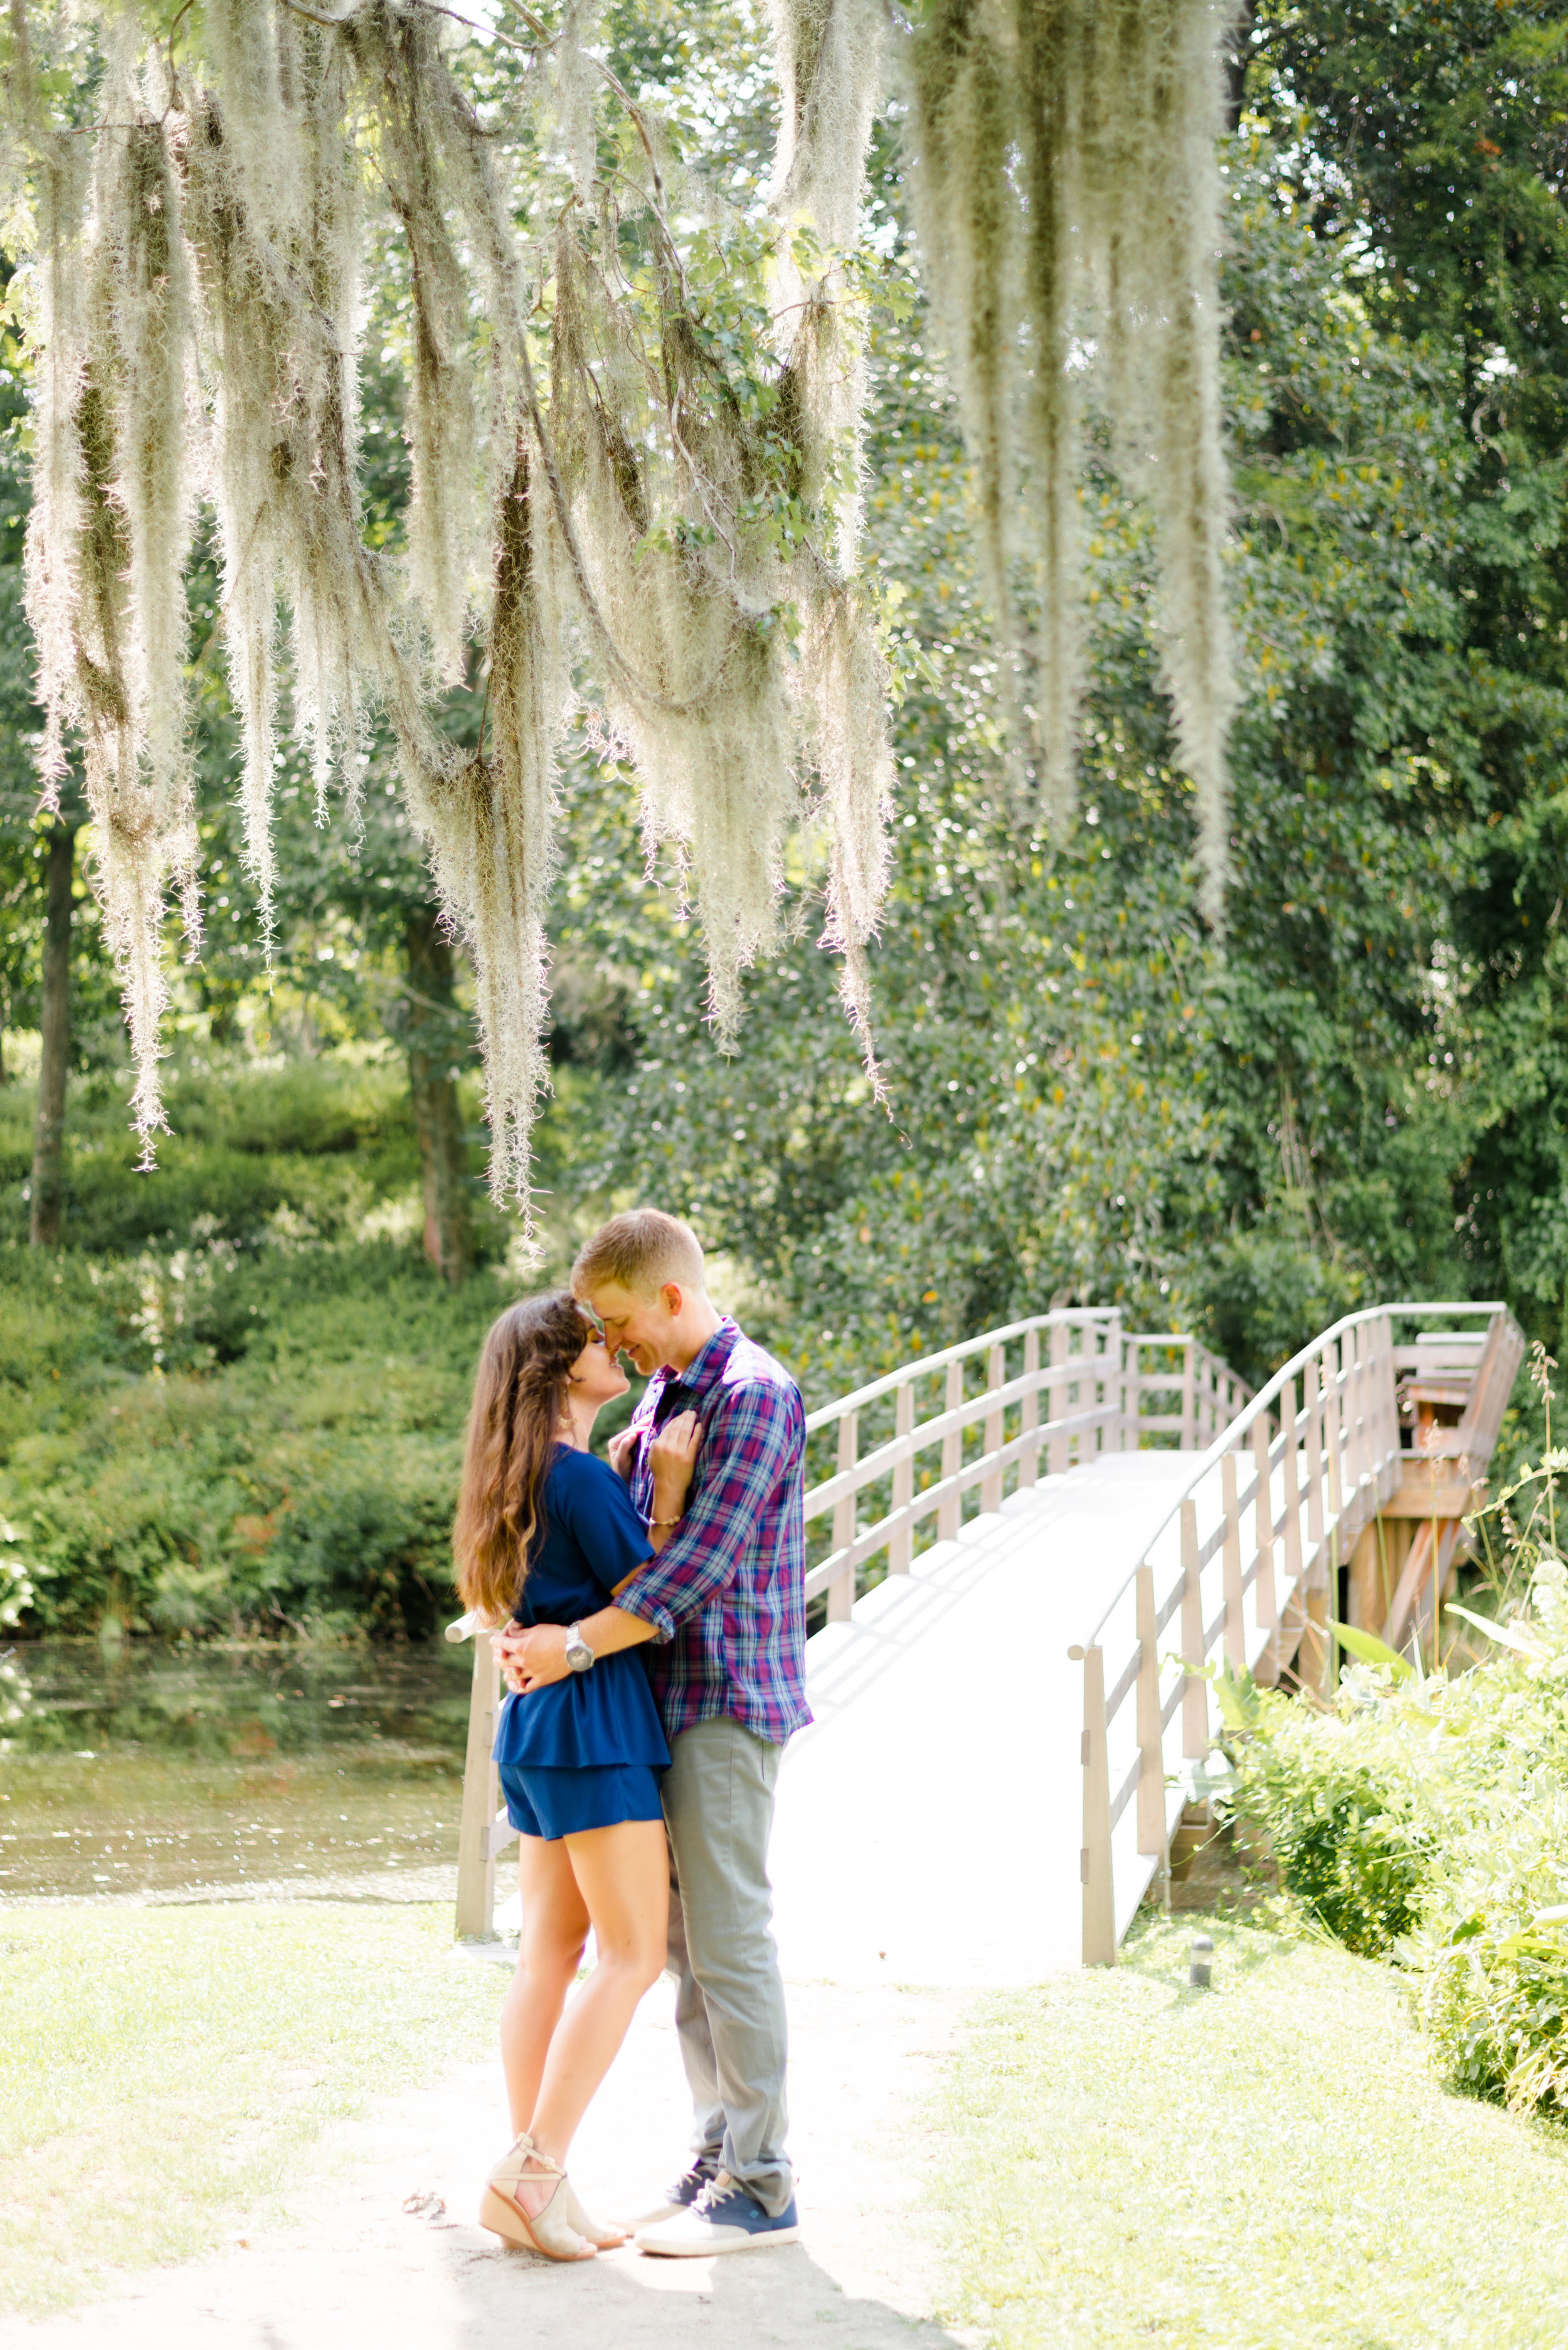 MIDDLETON PLACE ENGAGEMENT SESSION   MIKE + HOLLY